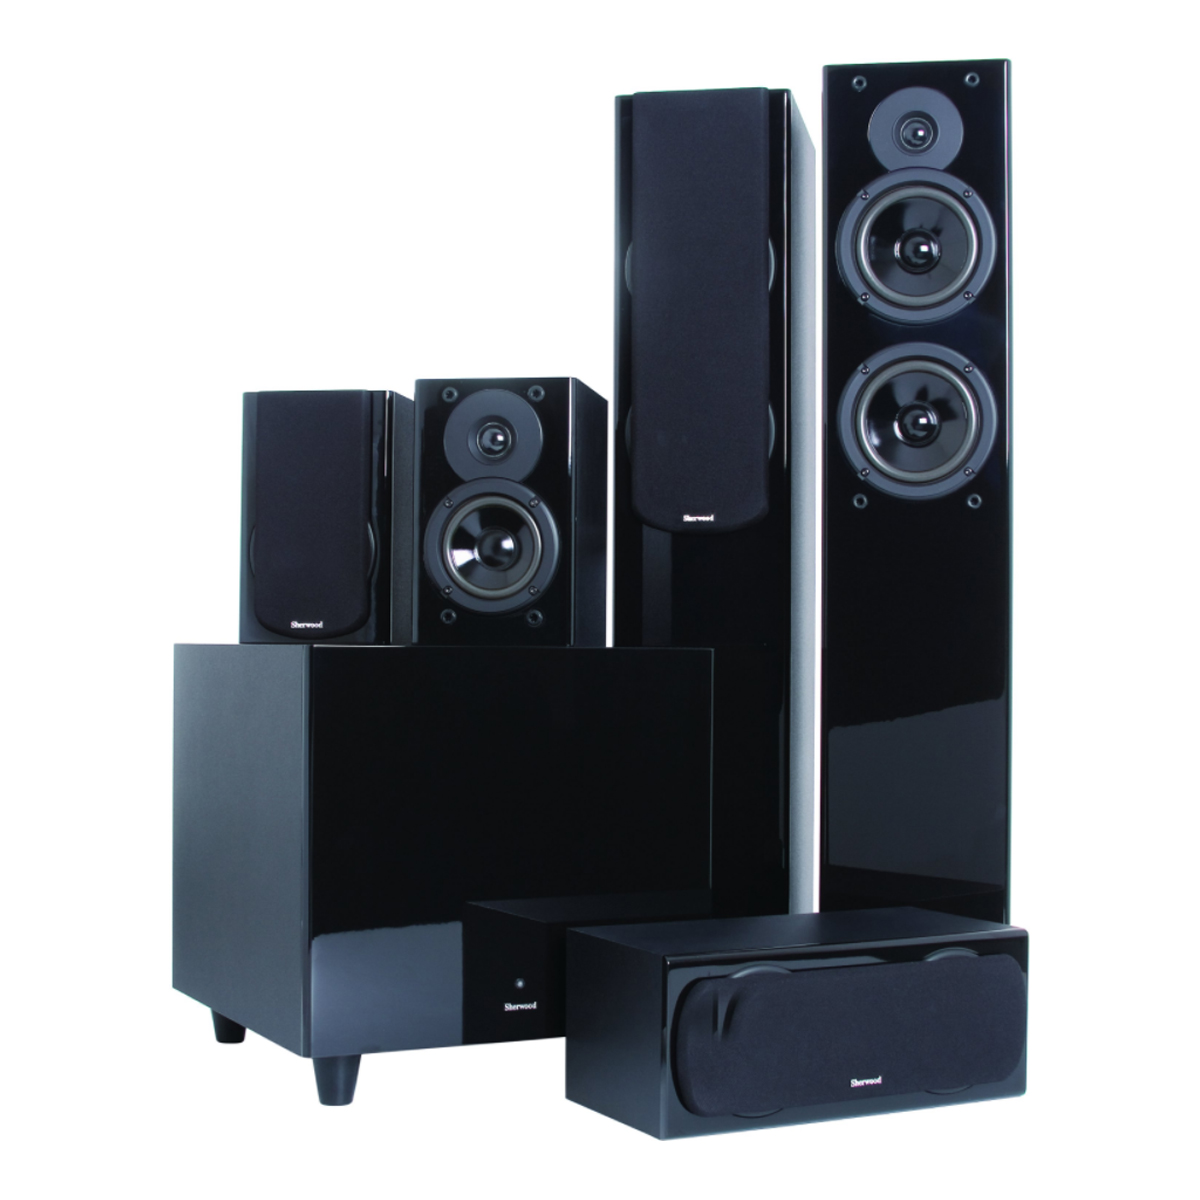 Sherwood CONCERTO-PACK 5.1 Ch Home Theatre System